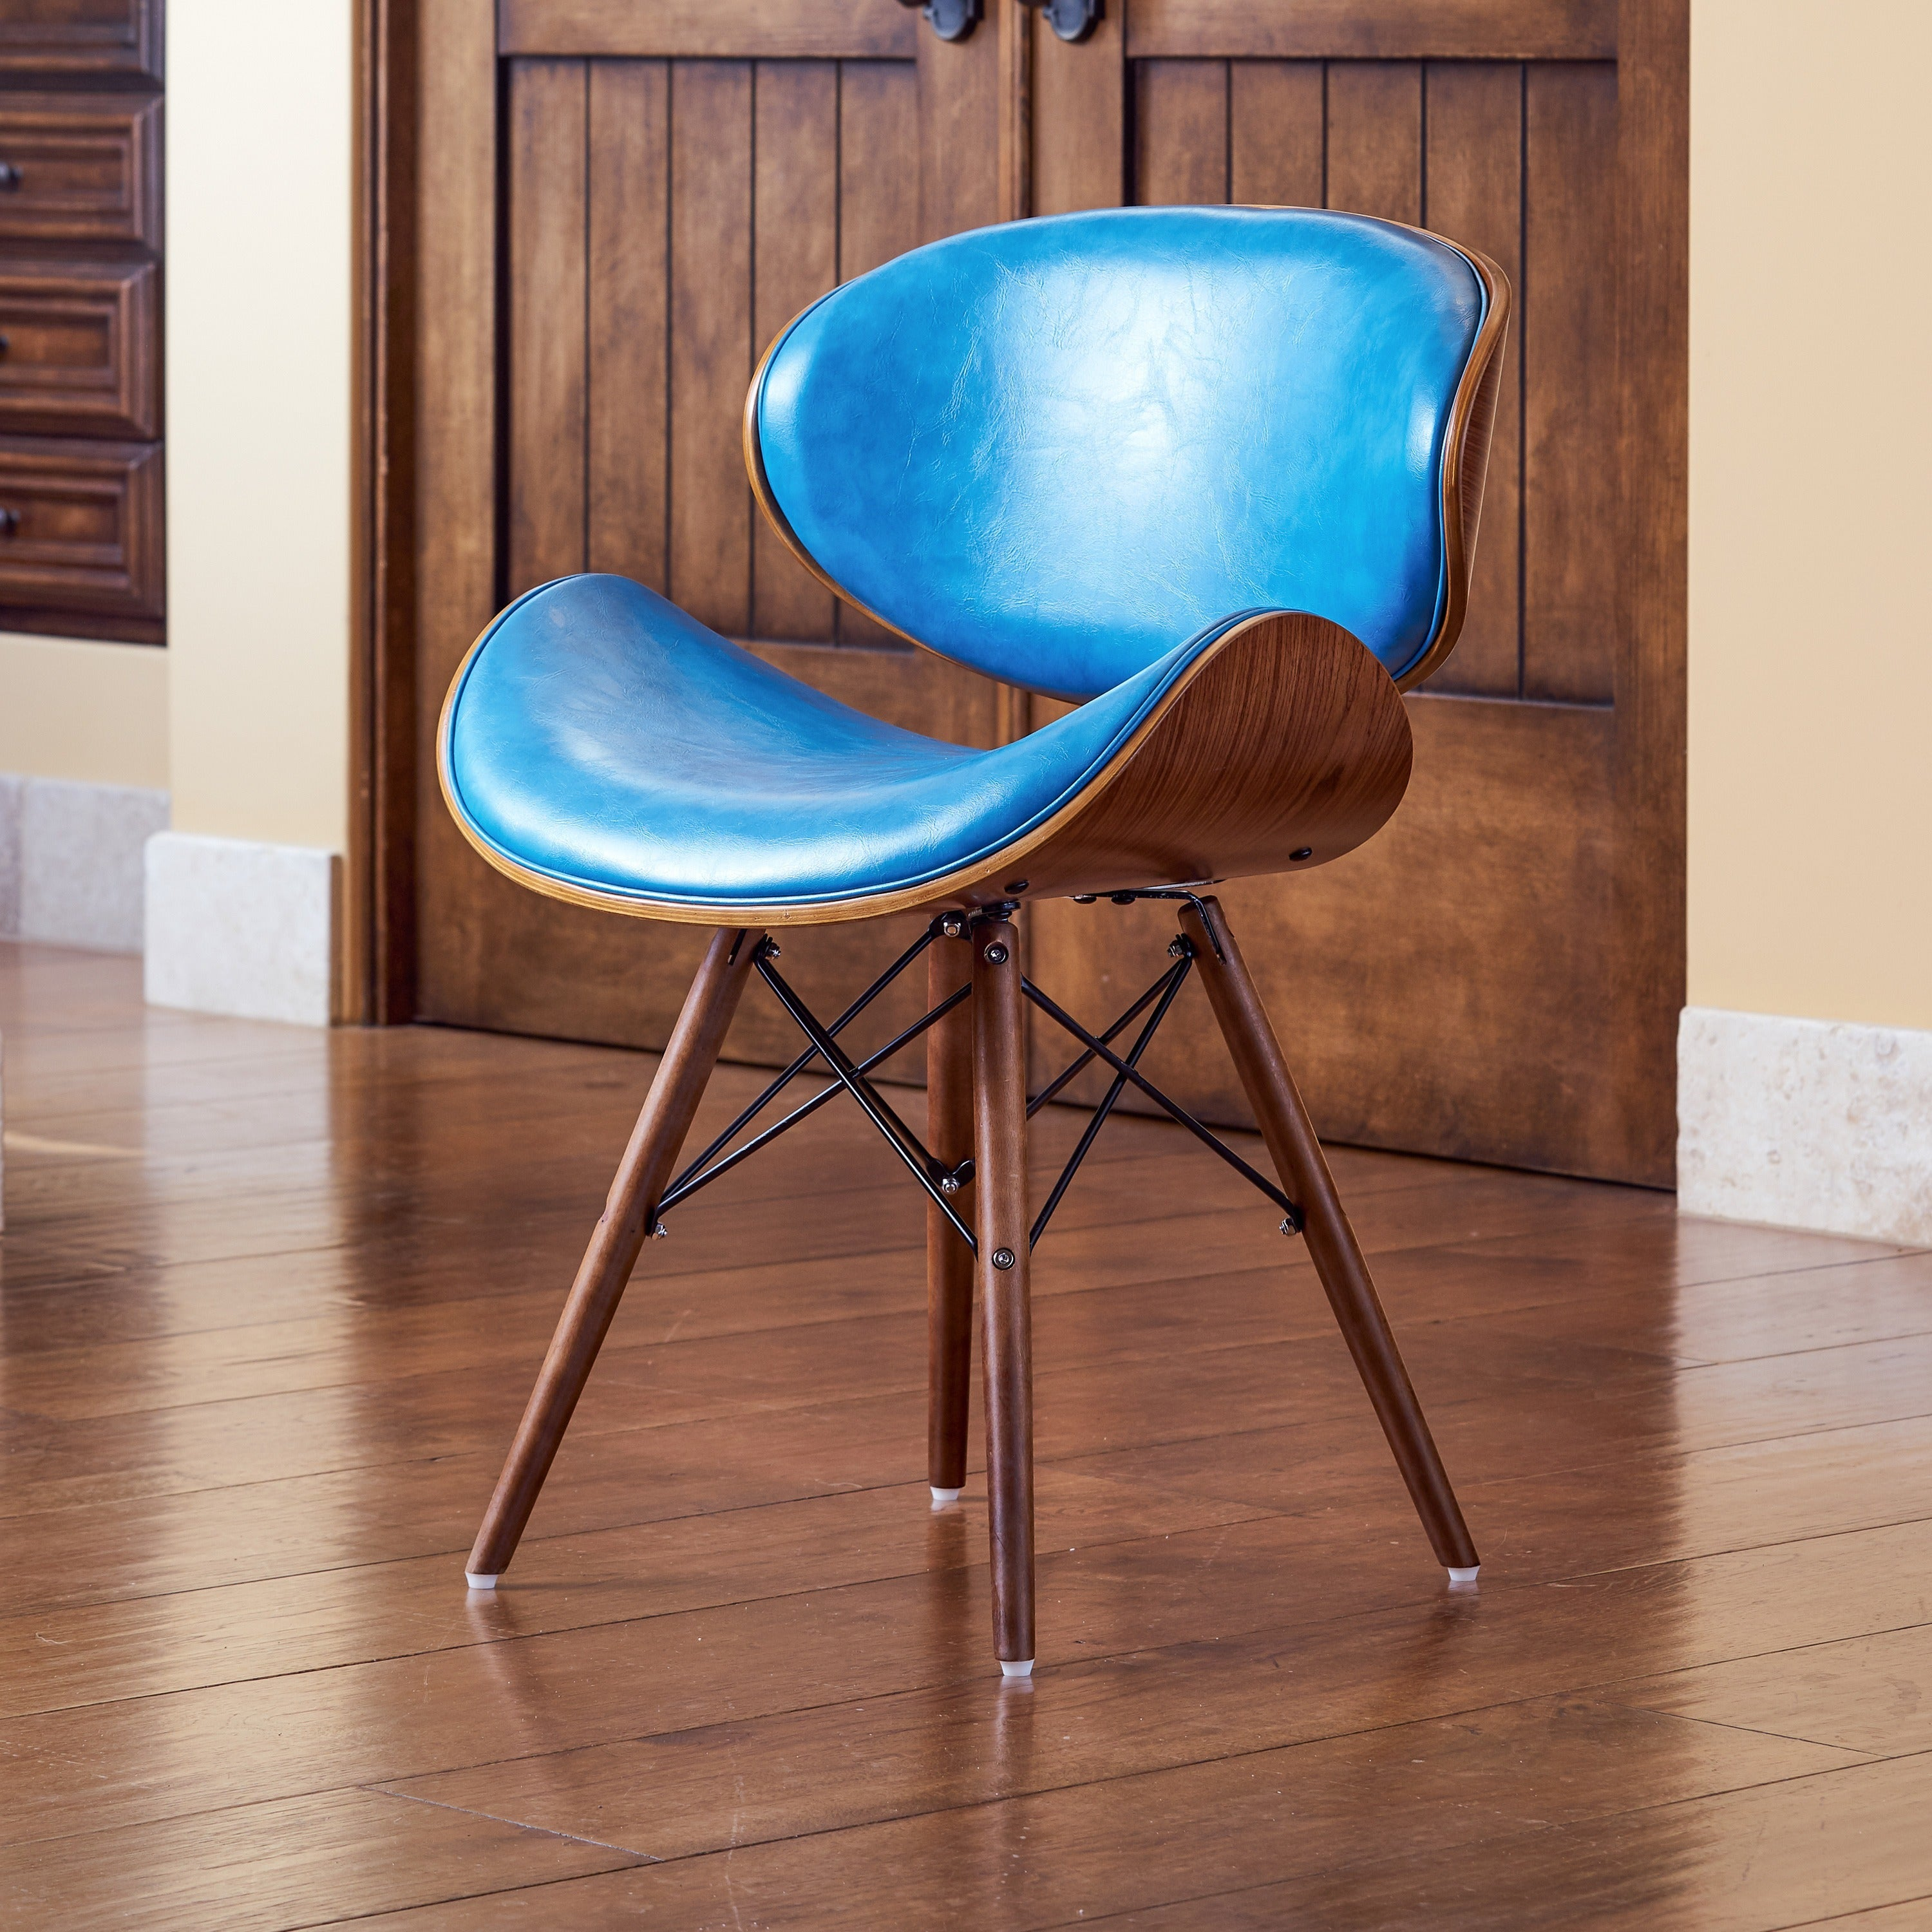 Corvus Madonna Mid-century Teal Accent Chair (2 options available)